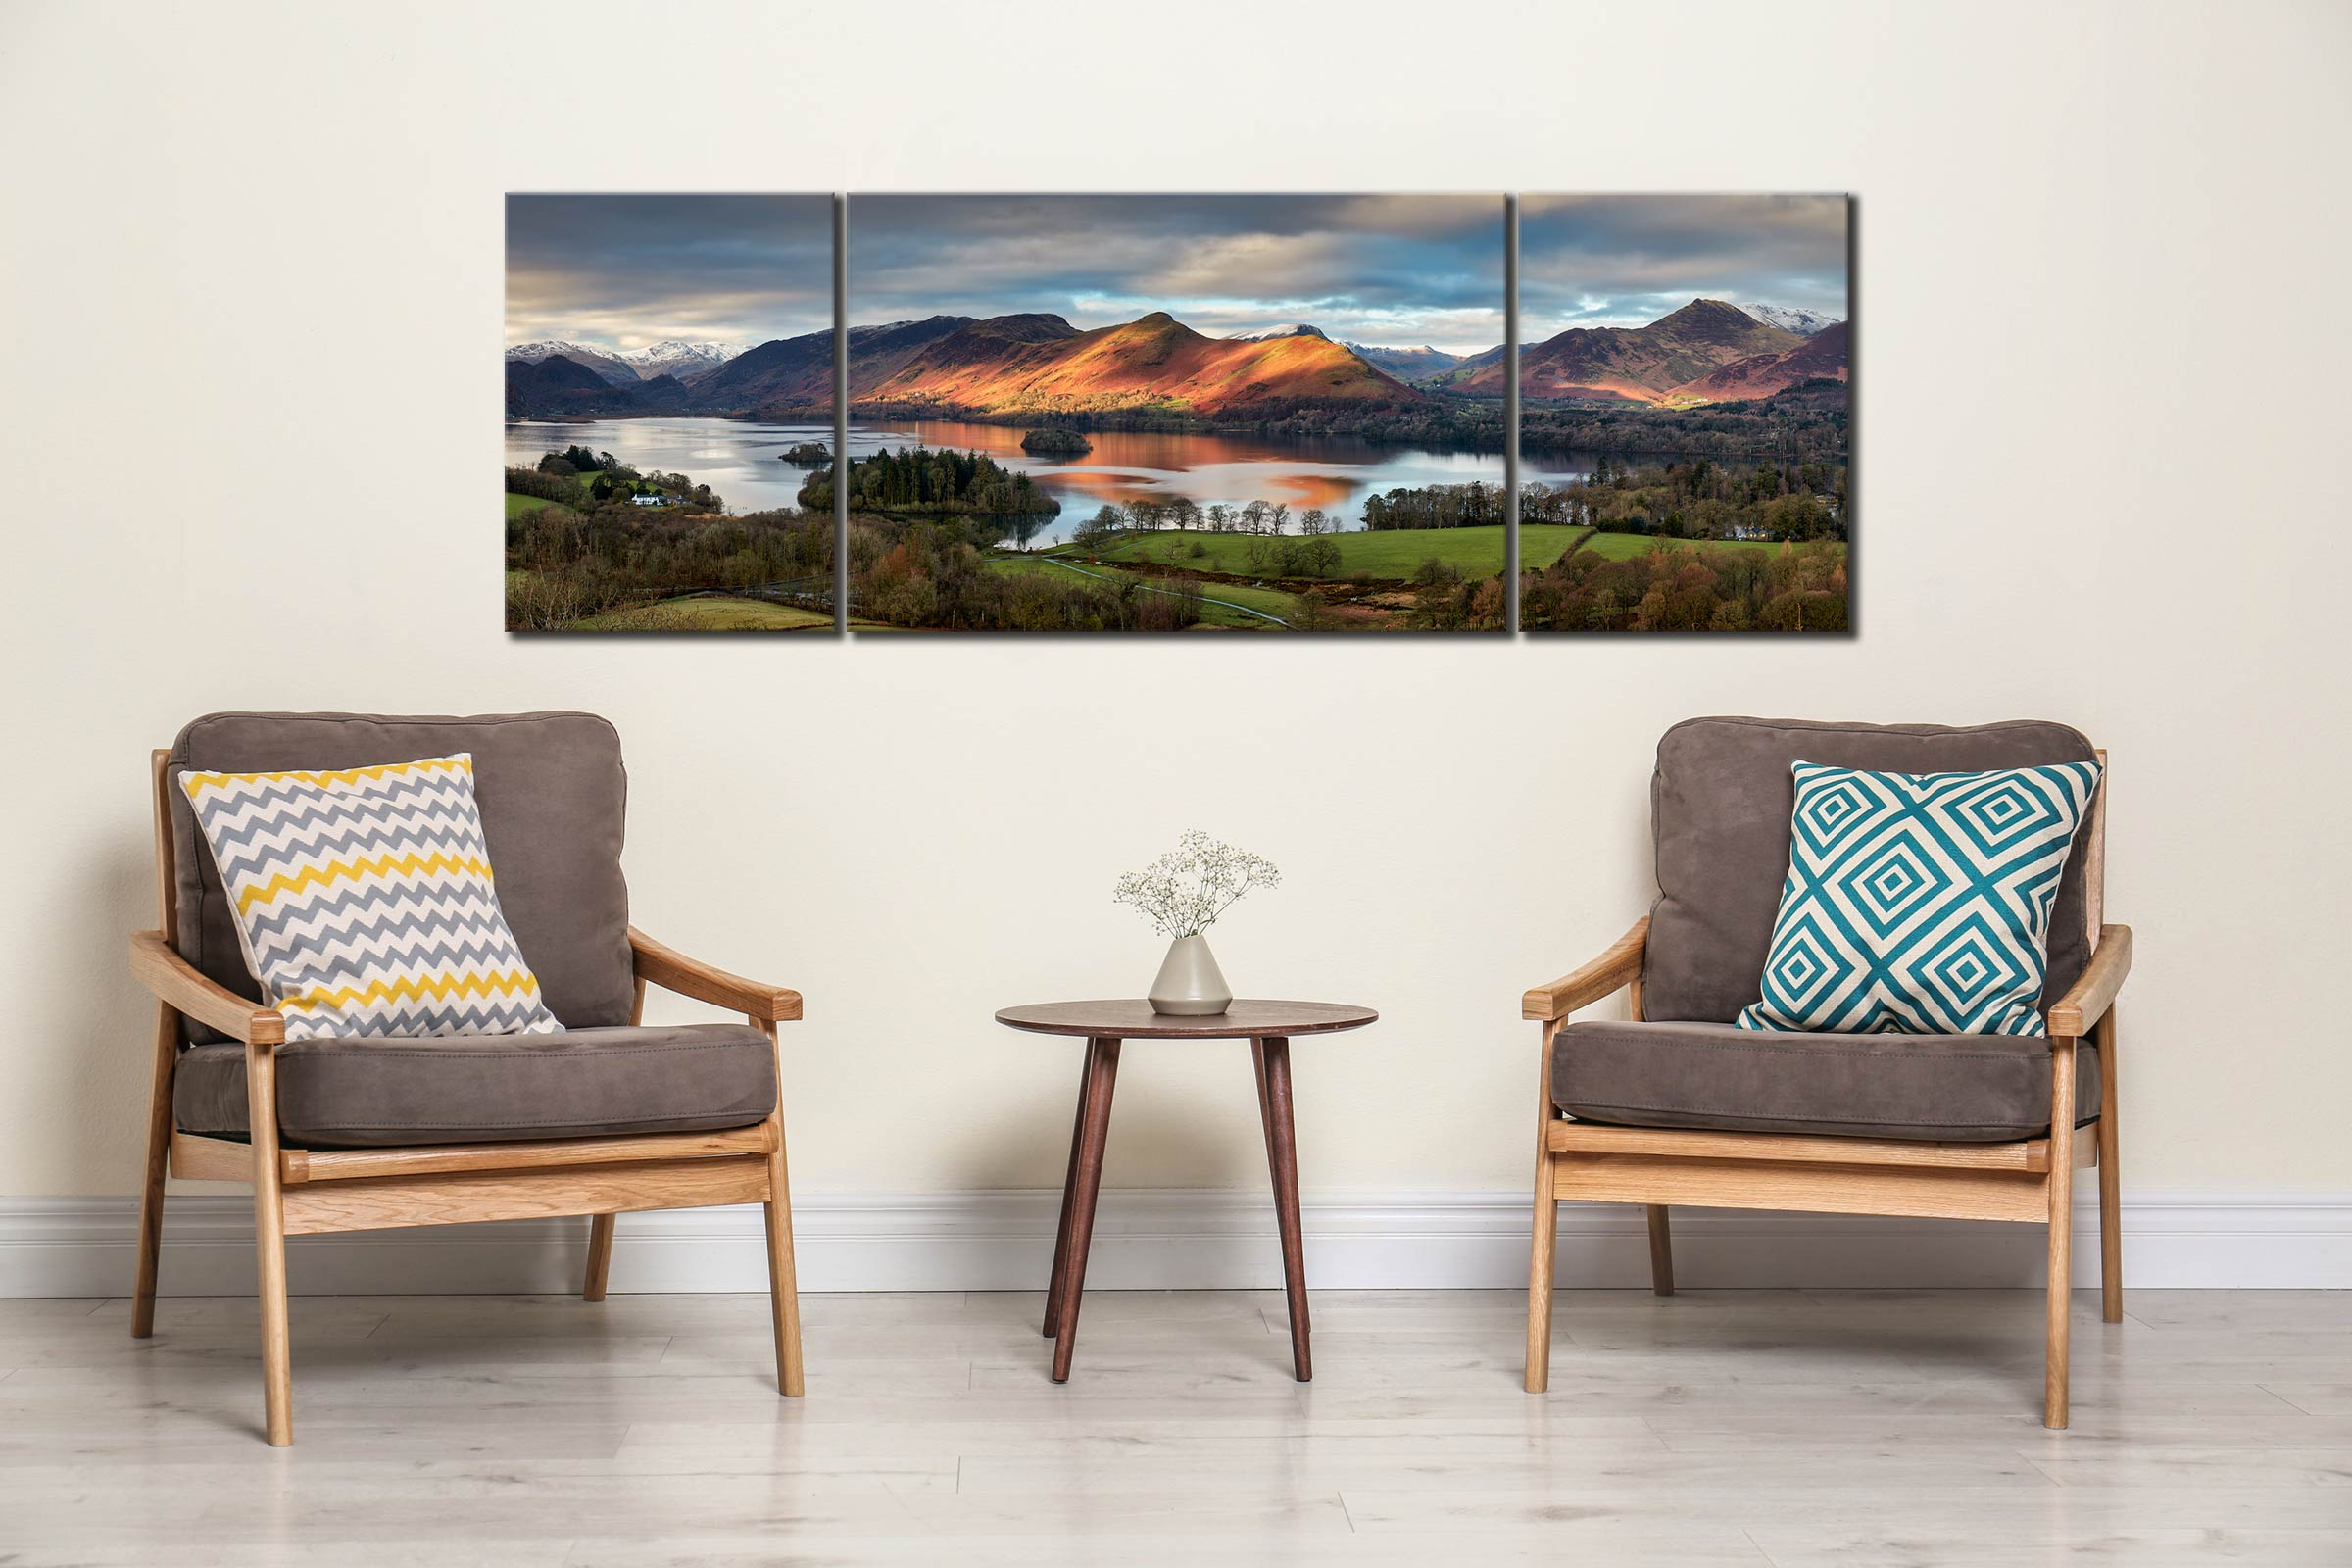 Cat Bells Morning Light - 3 Panel Wide Mid Canvas on Wall